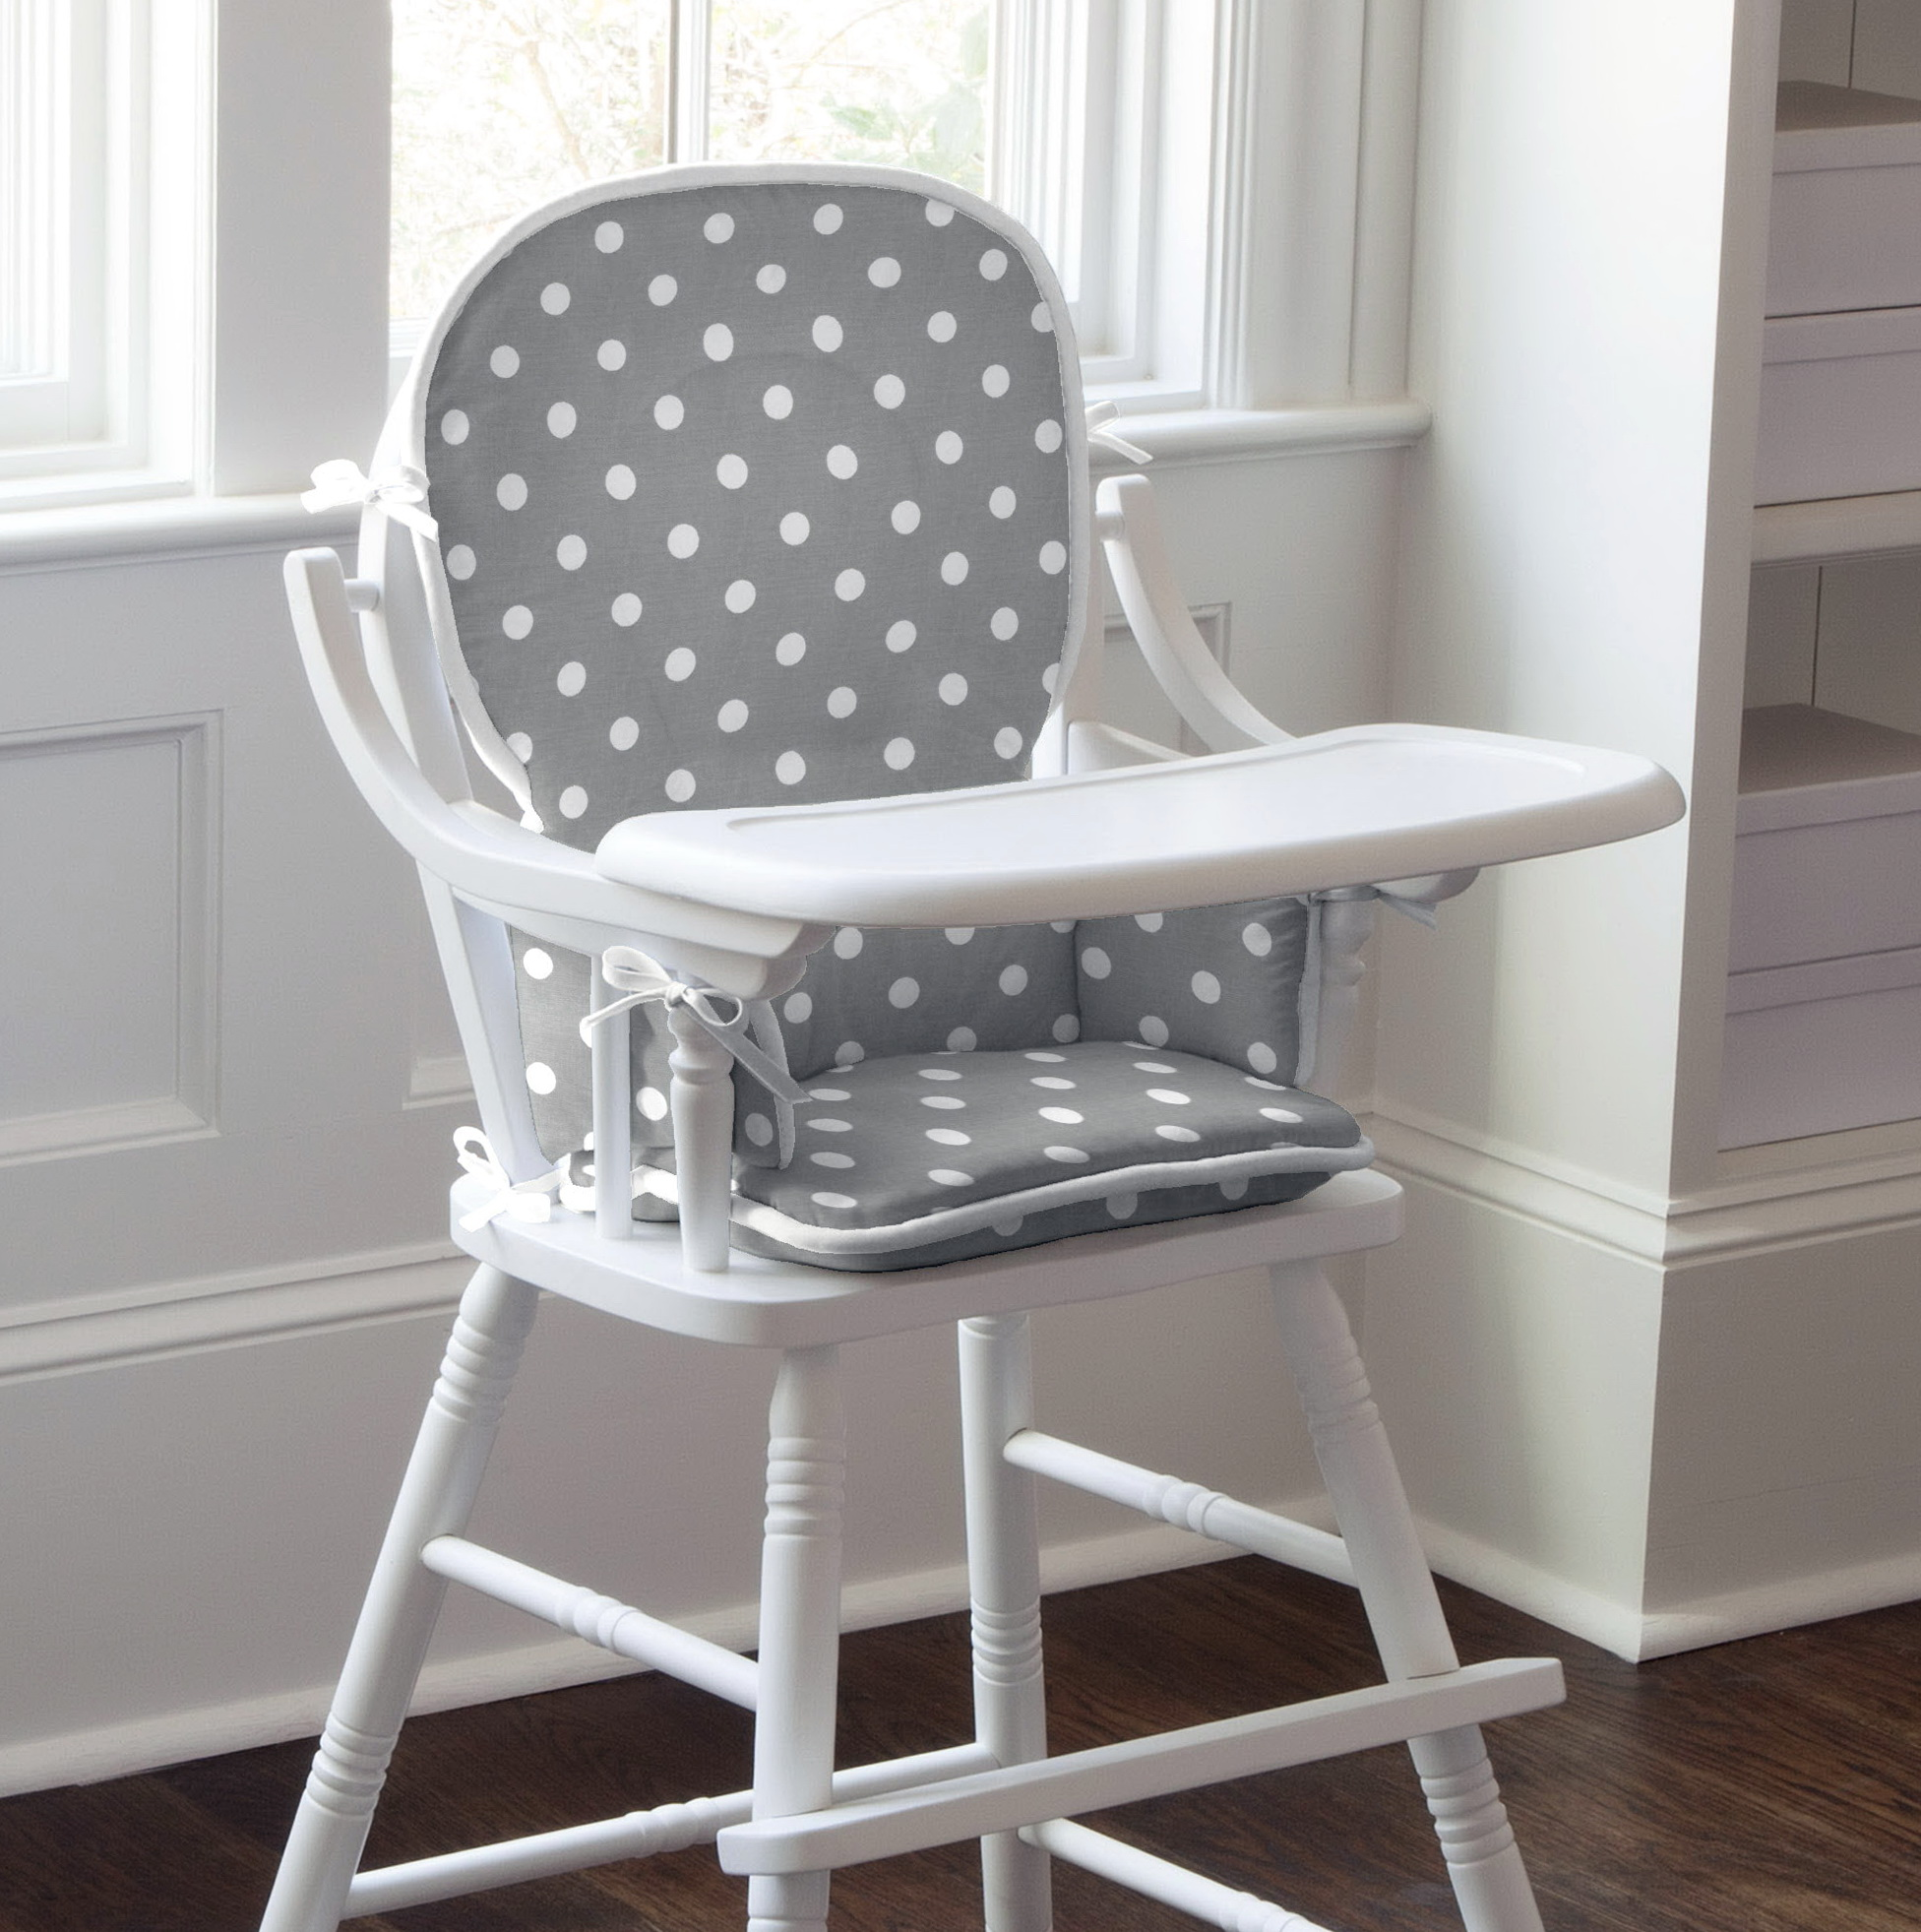 Wooden High Chair Cushion Pattern Home Design Ideas